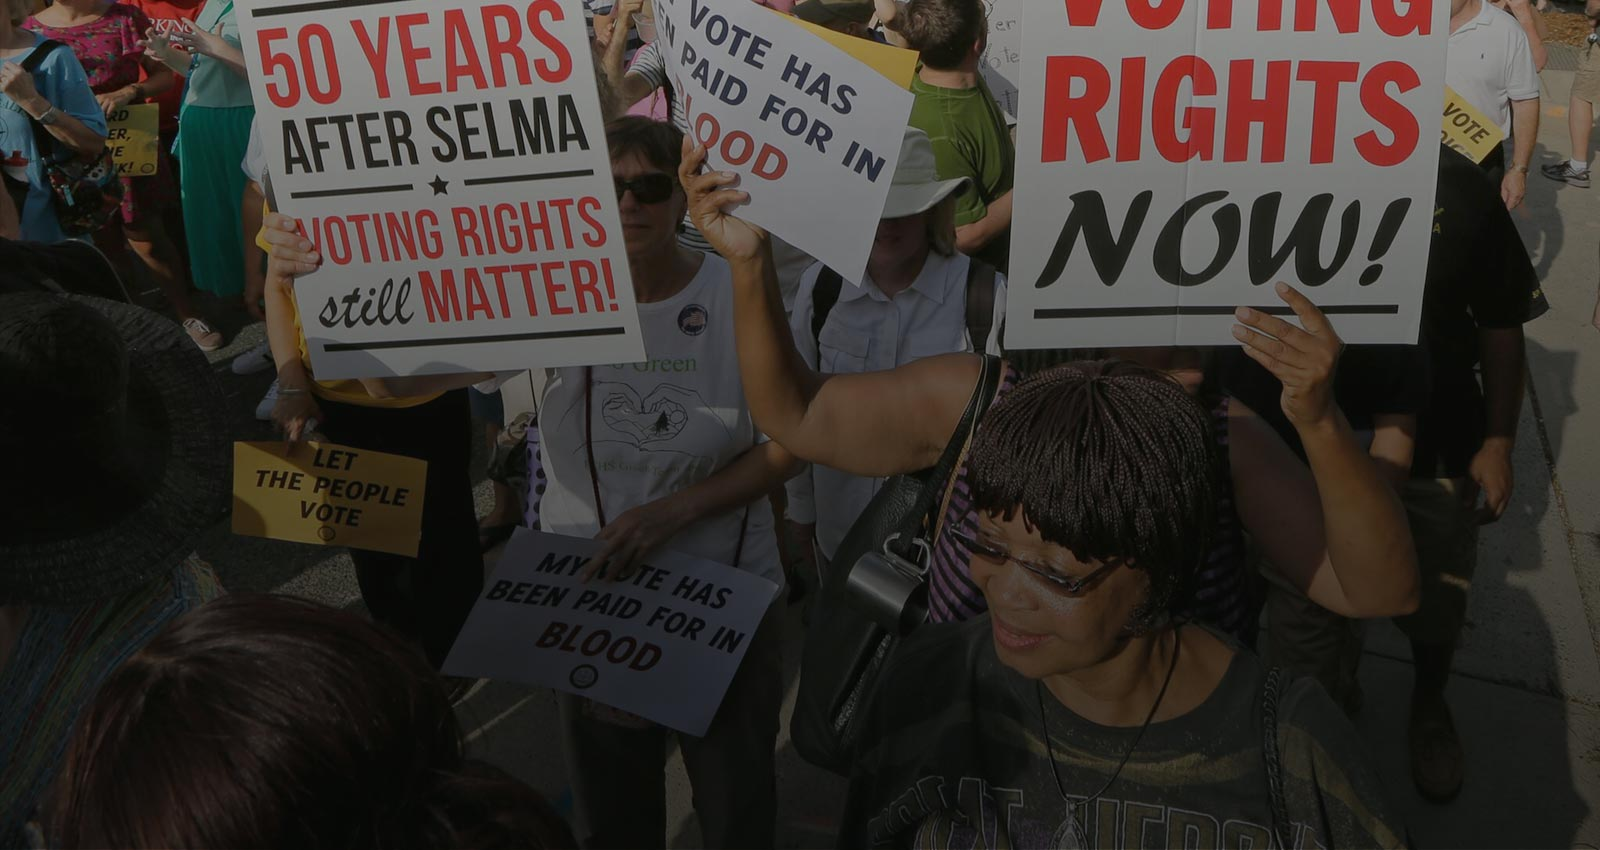 Protestors for voting rights